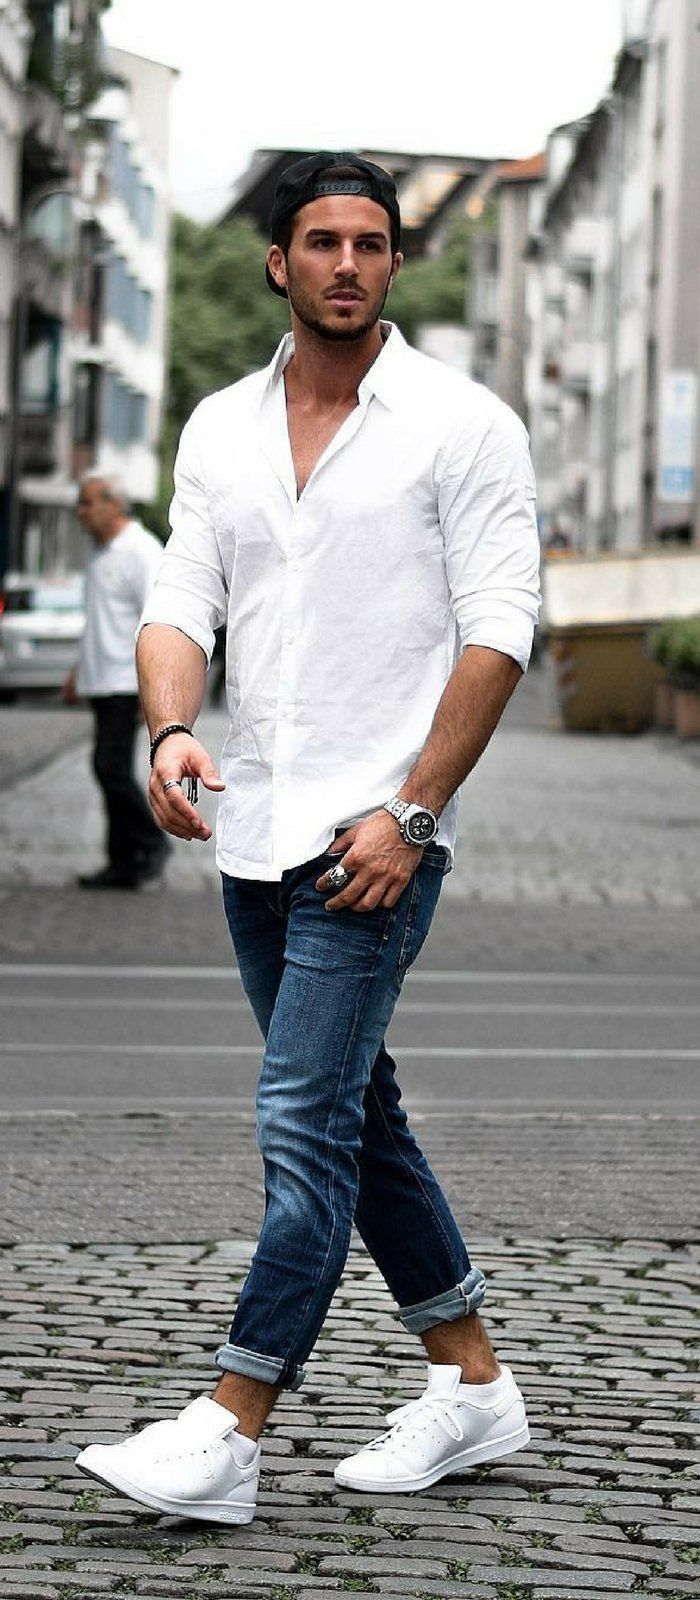 13 Coolest Casual Street Styles For Men